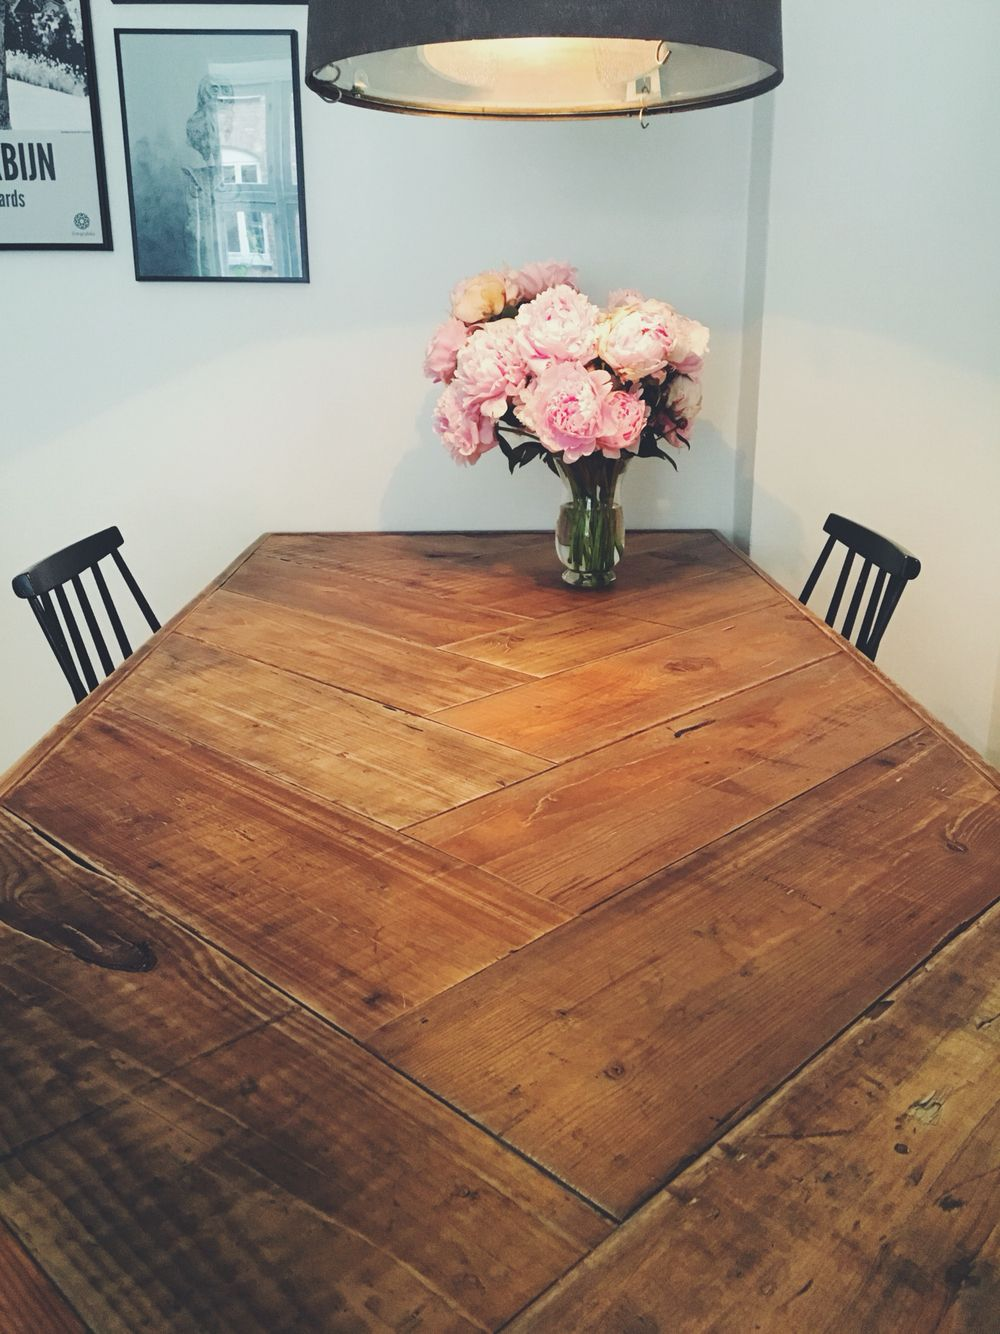 herringbone table ☺ | new wood project | pinterest | herringbone